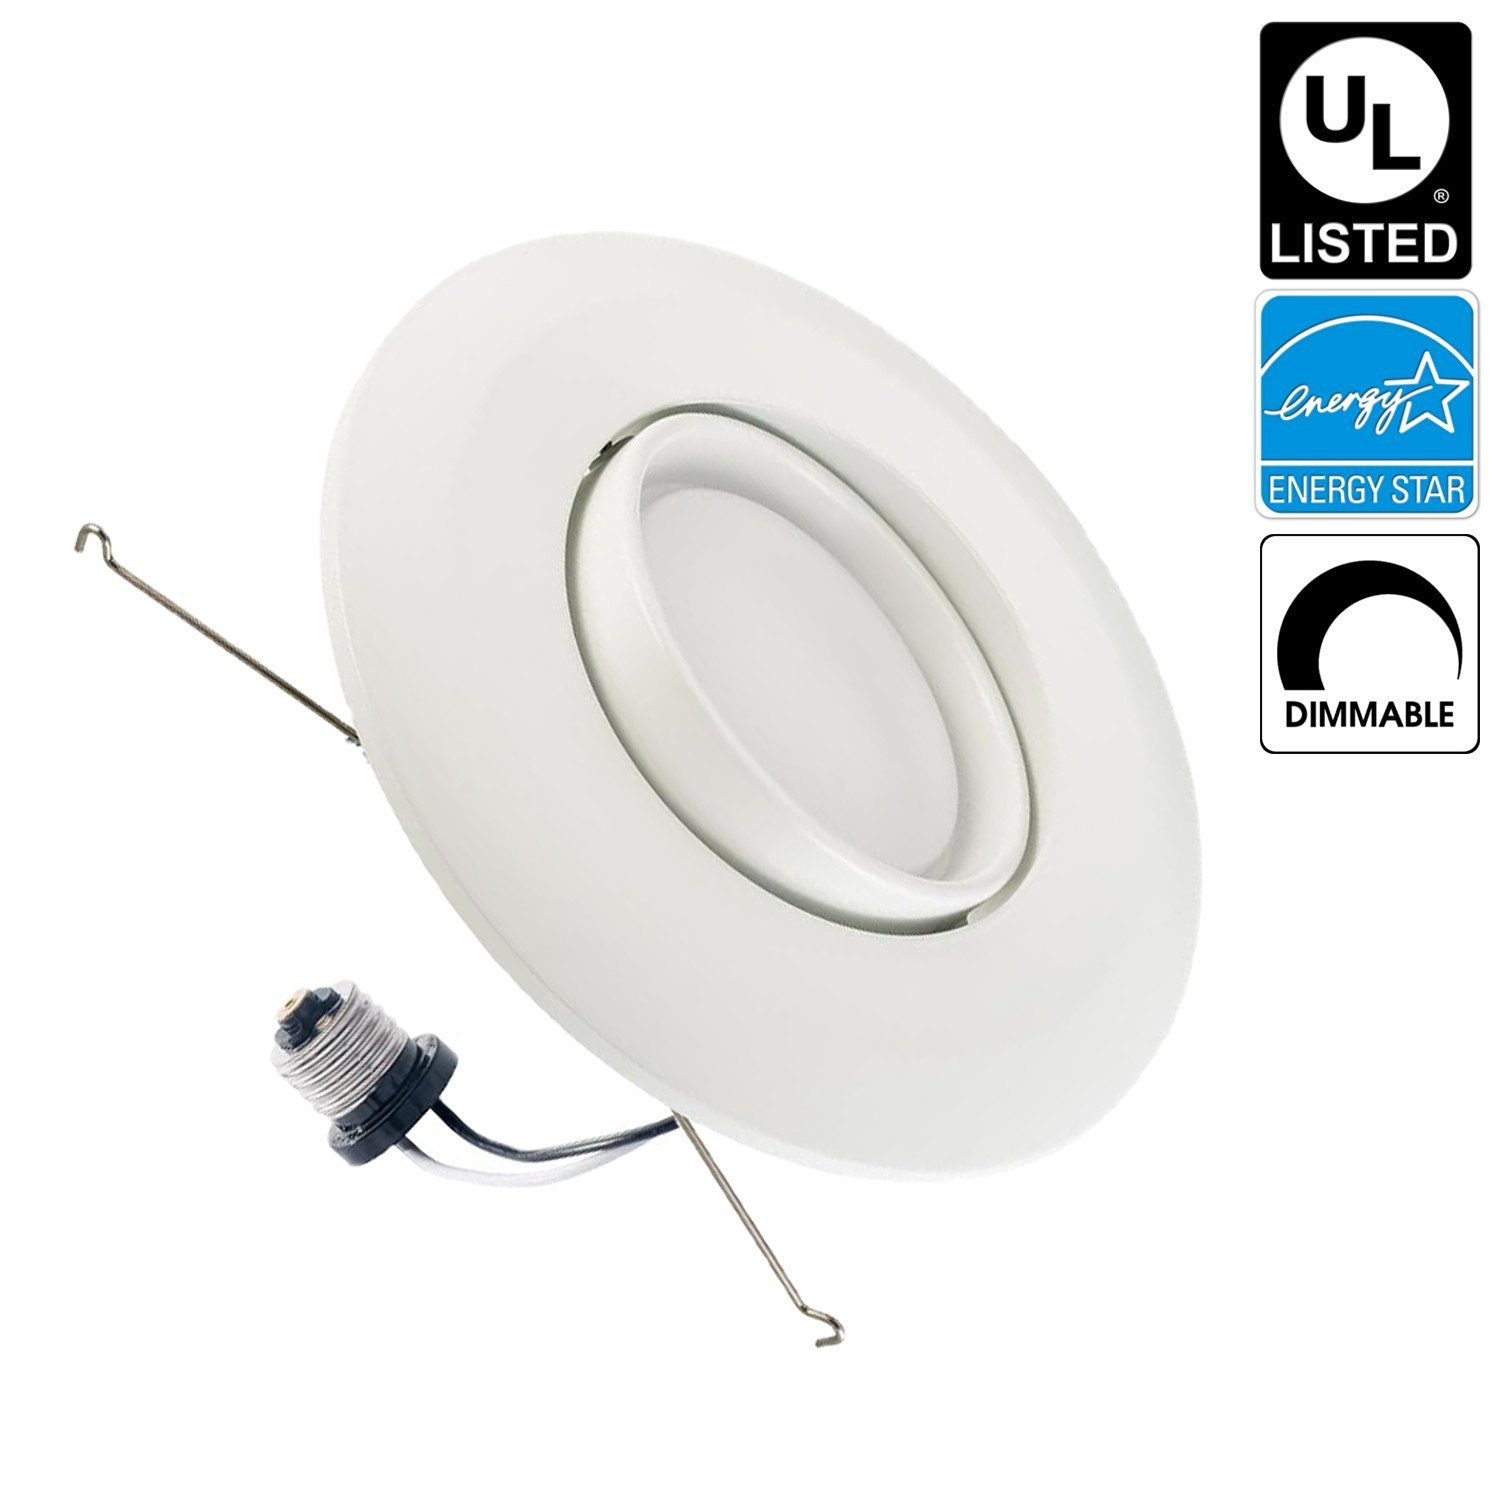 Luxrite LR23040 15W 5/6 Inch LED Gimbal Retrofit Downlight, 120W Equivalent, ENERGY STAR, Dimmable, Soft White 3000K, Adjustable Recessed LED Ceiling Light, UL Listed, 1-Pack